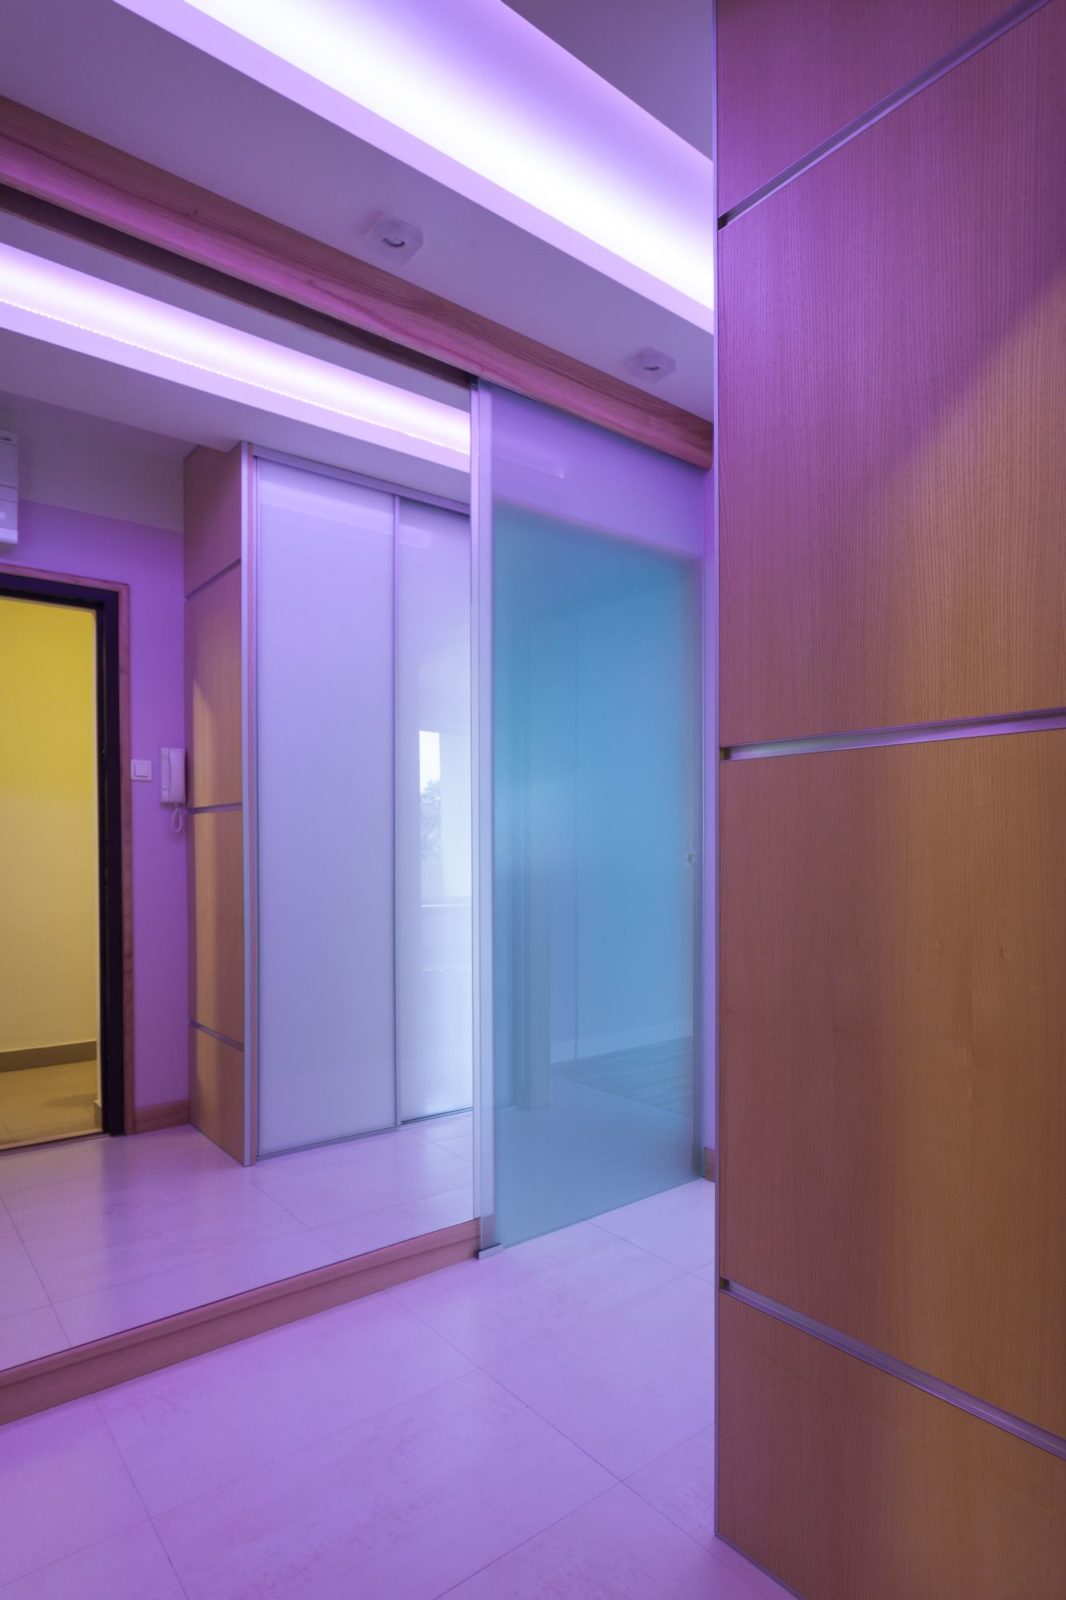 Violet wardrobe doors with LED backlight